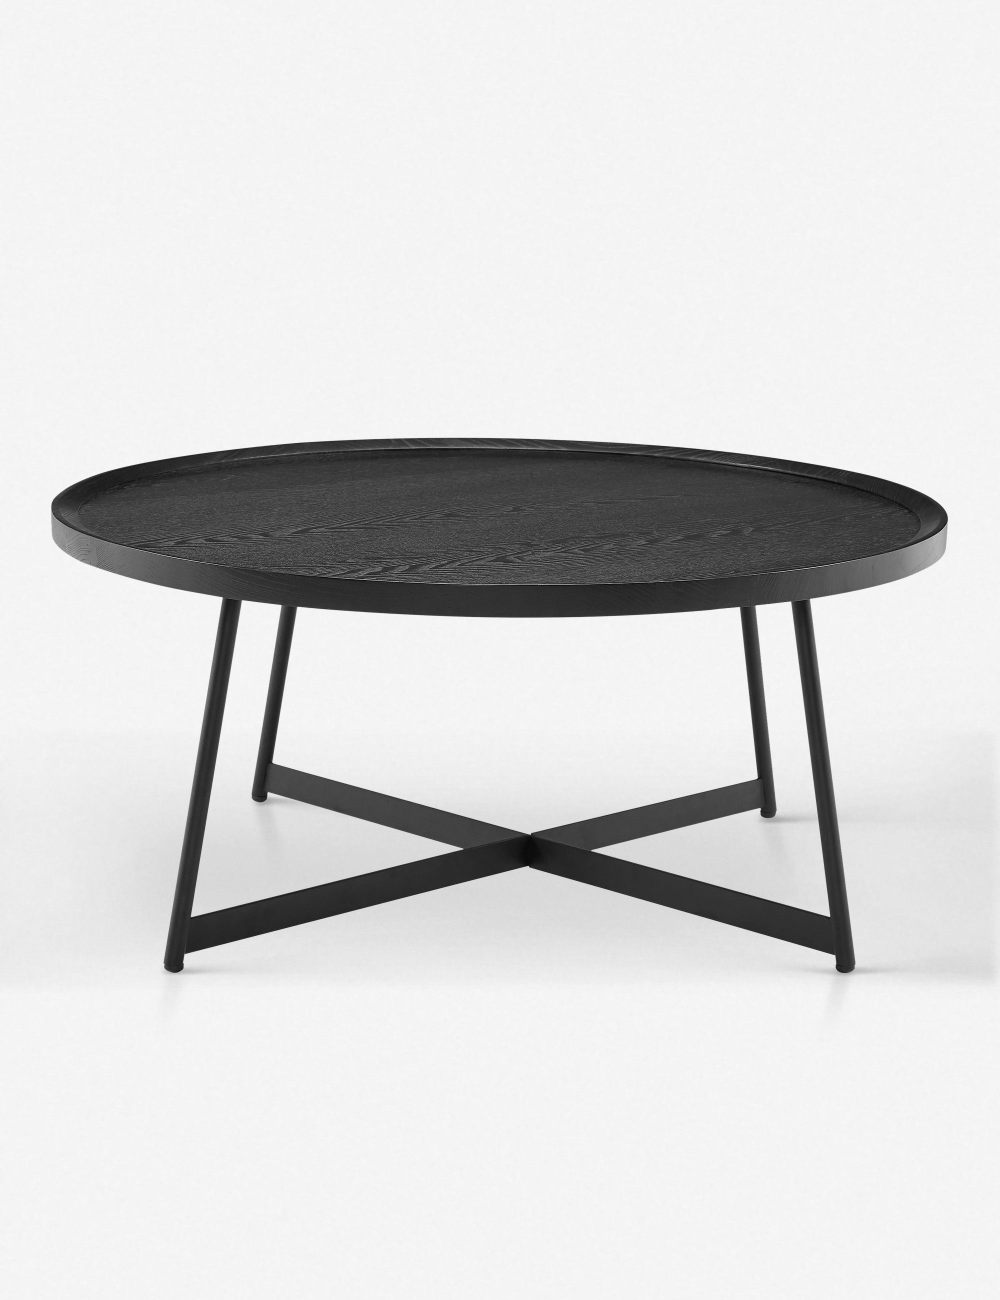 Gweneth Round Coffee Table Black Ash In 2020 Round Coffee Table Round Black Coffee Table Black Coffee Tables